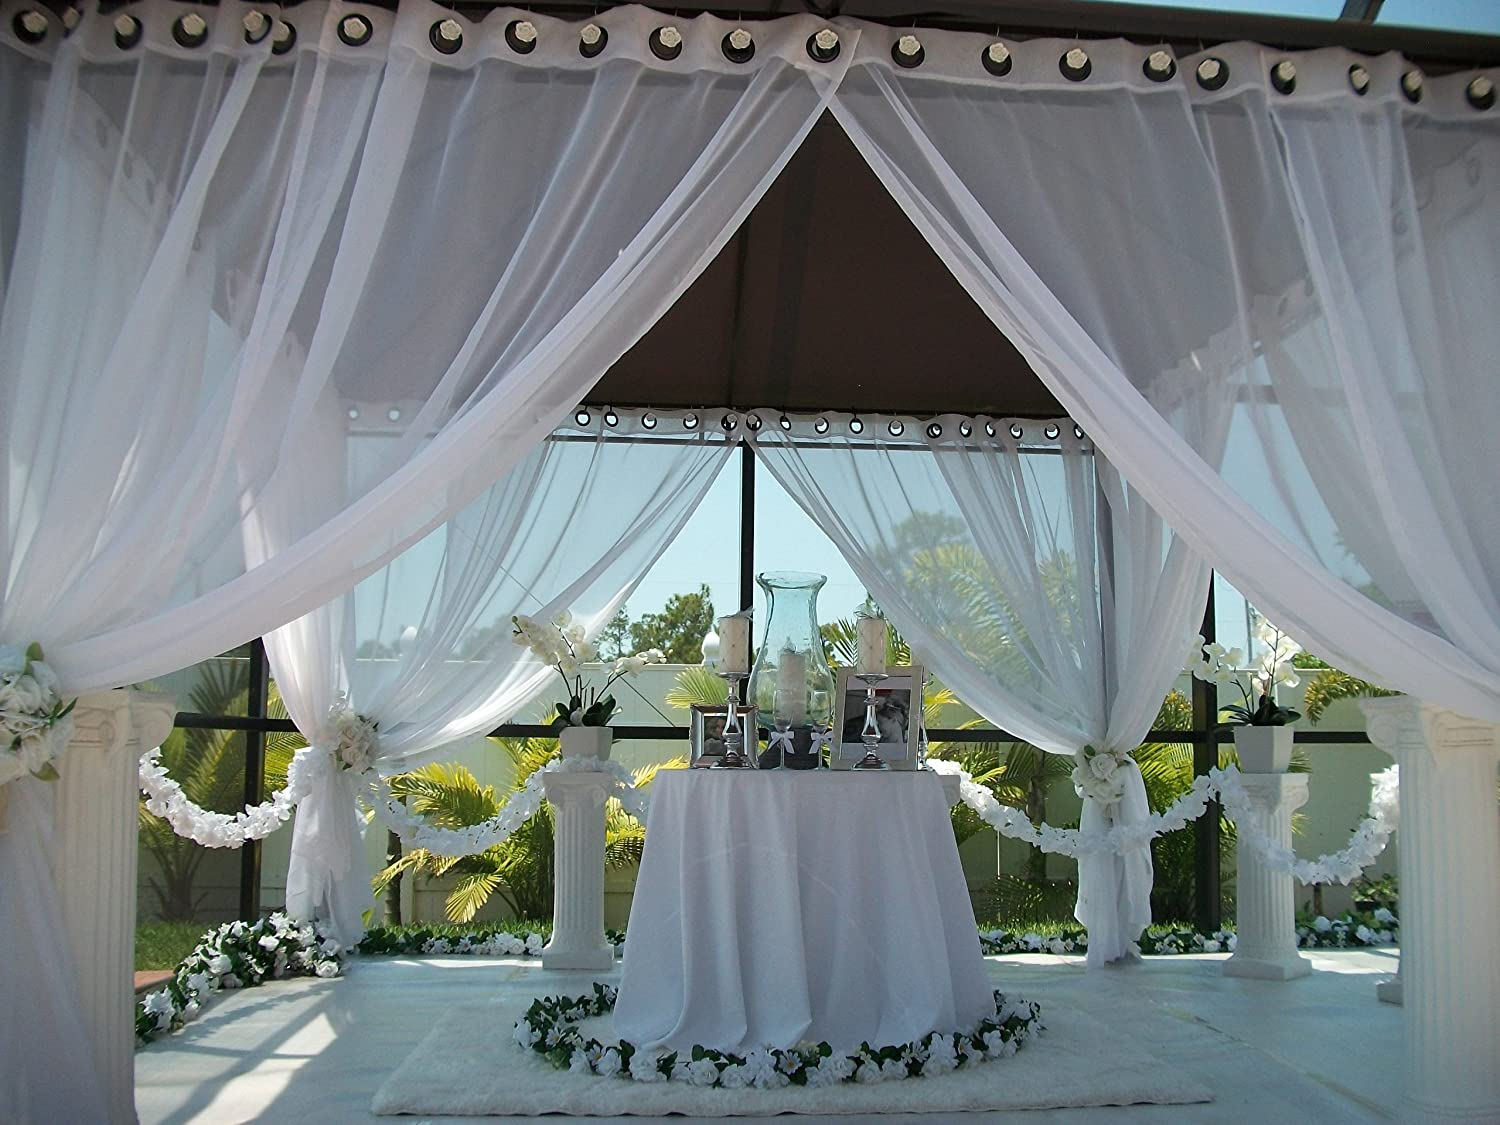 VIVIDX Outdoor Patios Curtains Canopy Gazebo Privacy Drapes Water /& Wind Repellent Courtyard Exterior Blackout Shade for Porch W55x39L